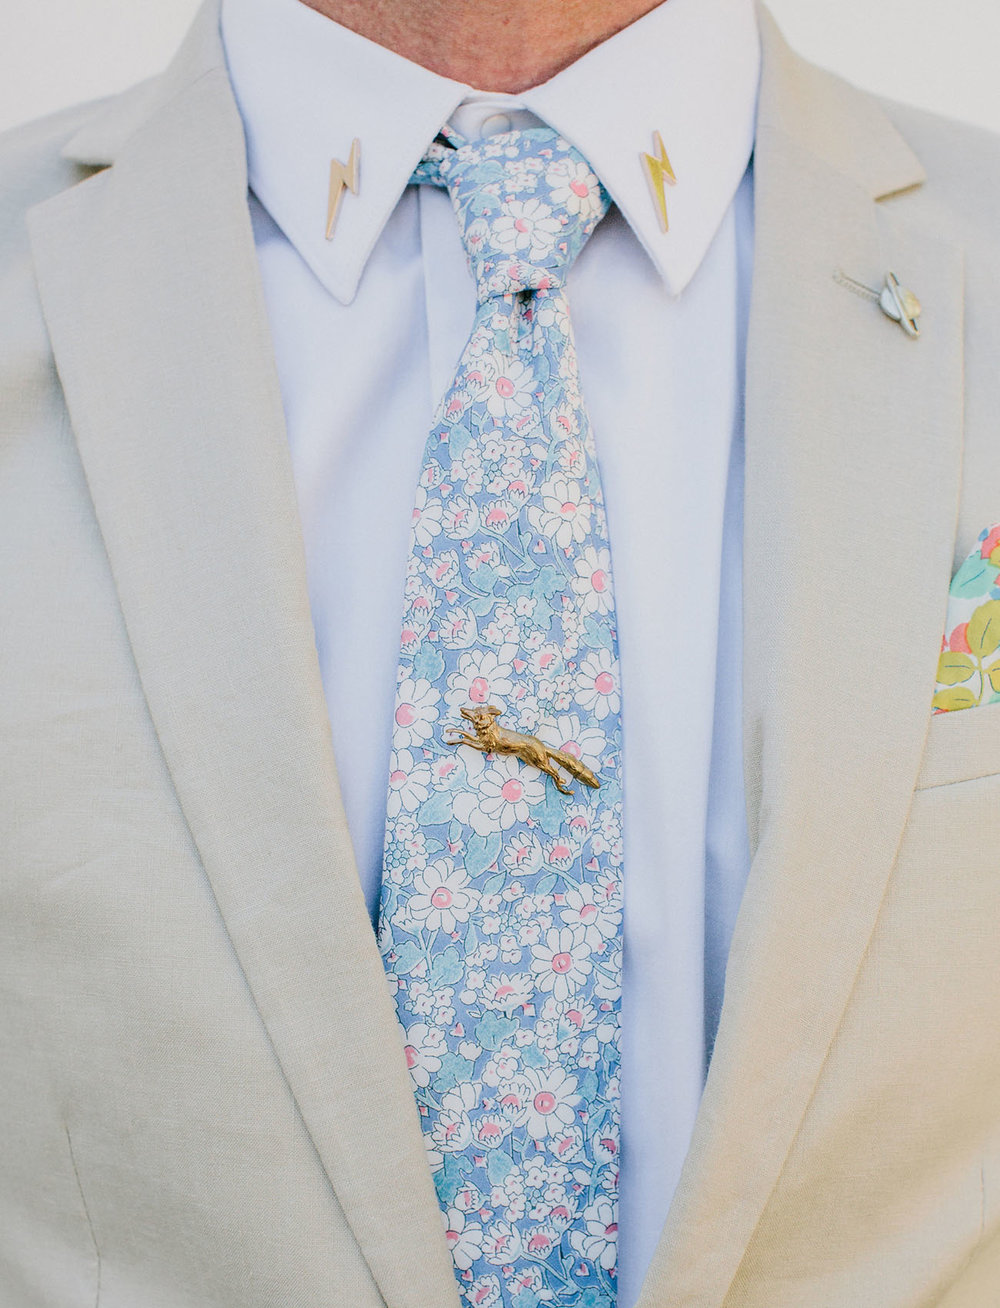 We're diggin' this floral tie + linen suit from  ASOS  (perfect for the beach wedding, might we add).